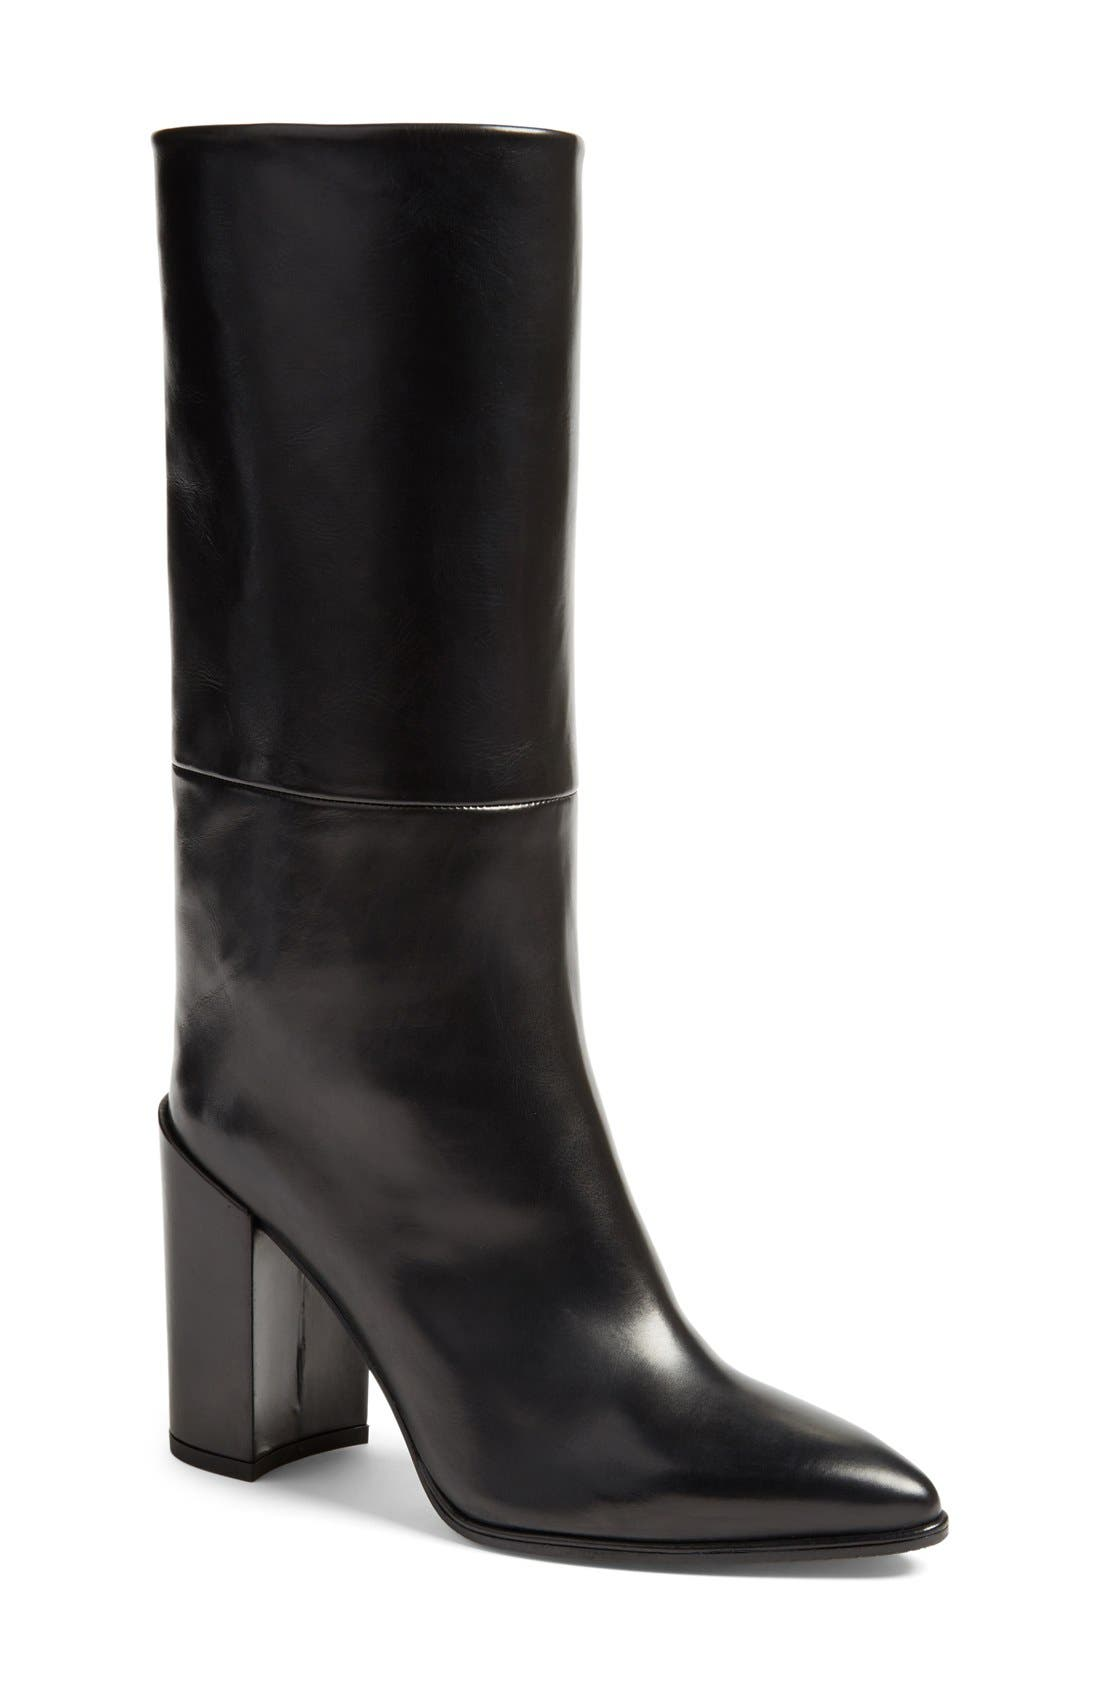 Alternate Image 1 Selected - Stuart Weitzman 'Straighten' Pointy Toe Boot (Women)